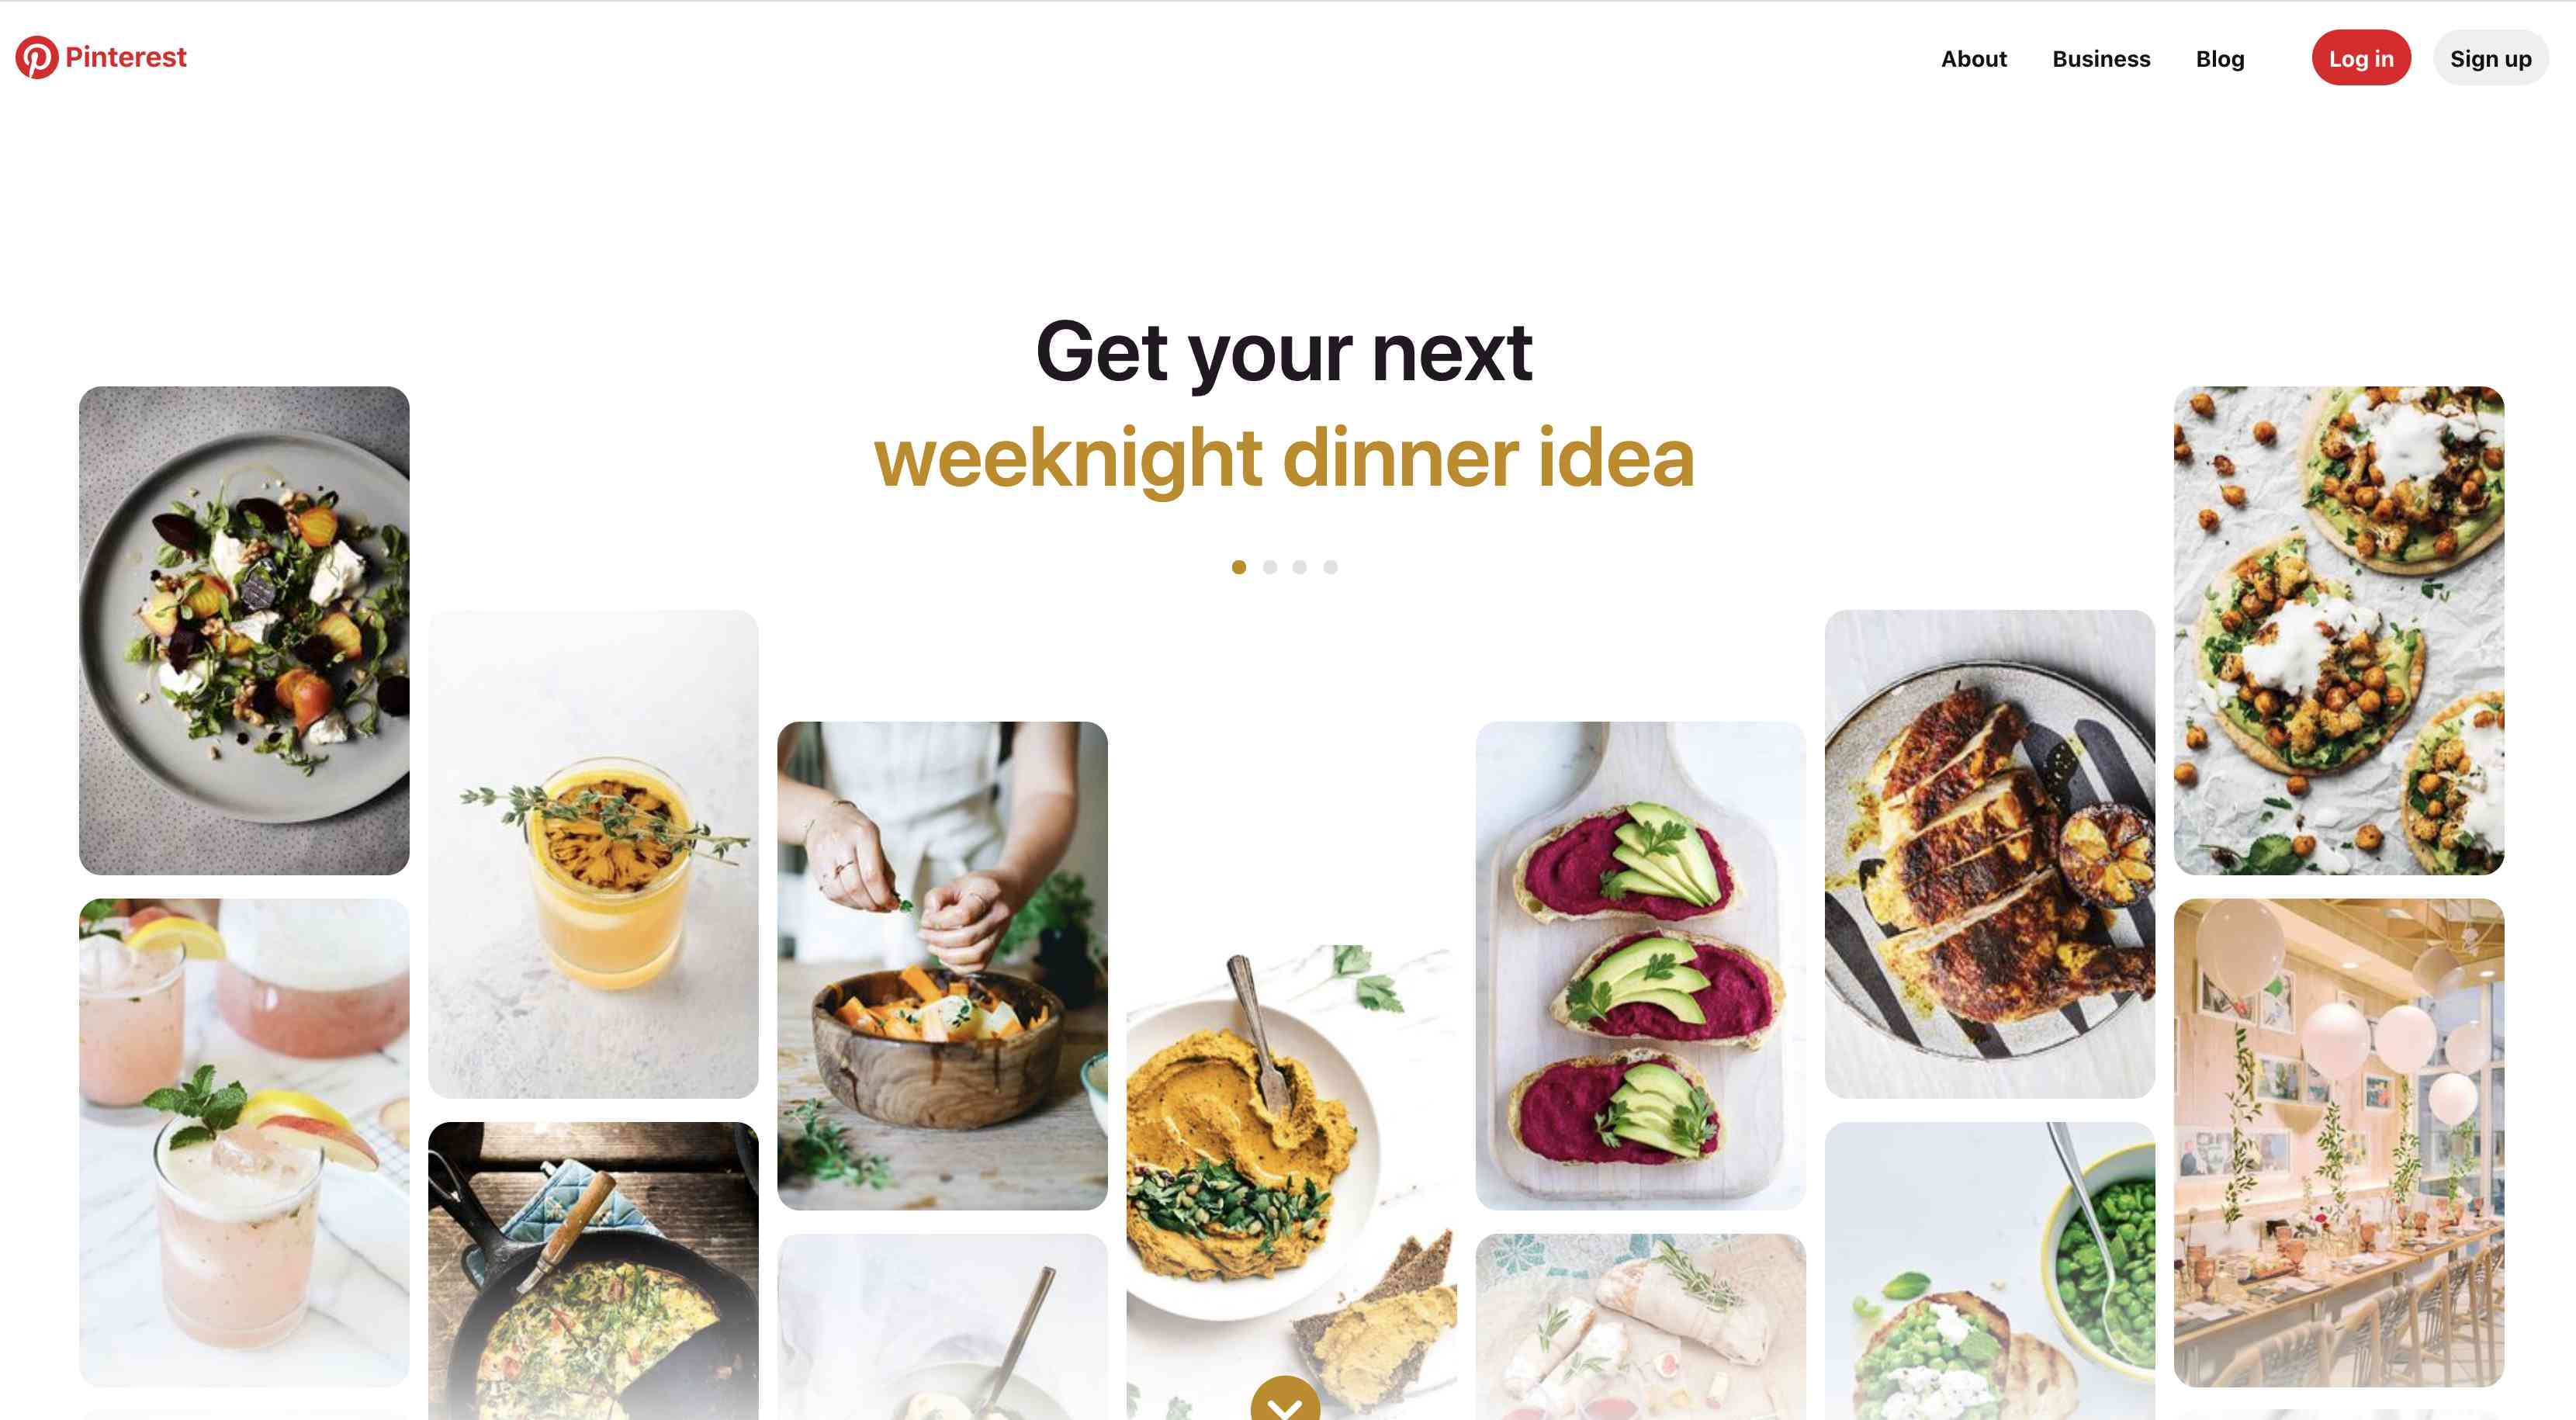 Pinterest home page with image slideshow